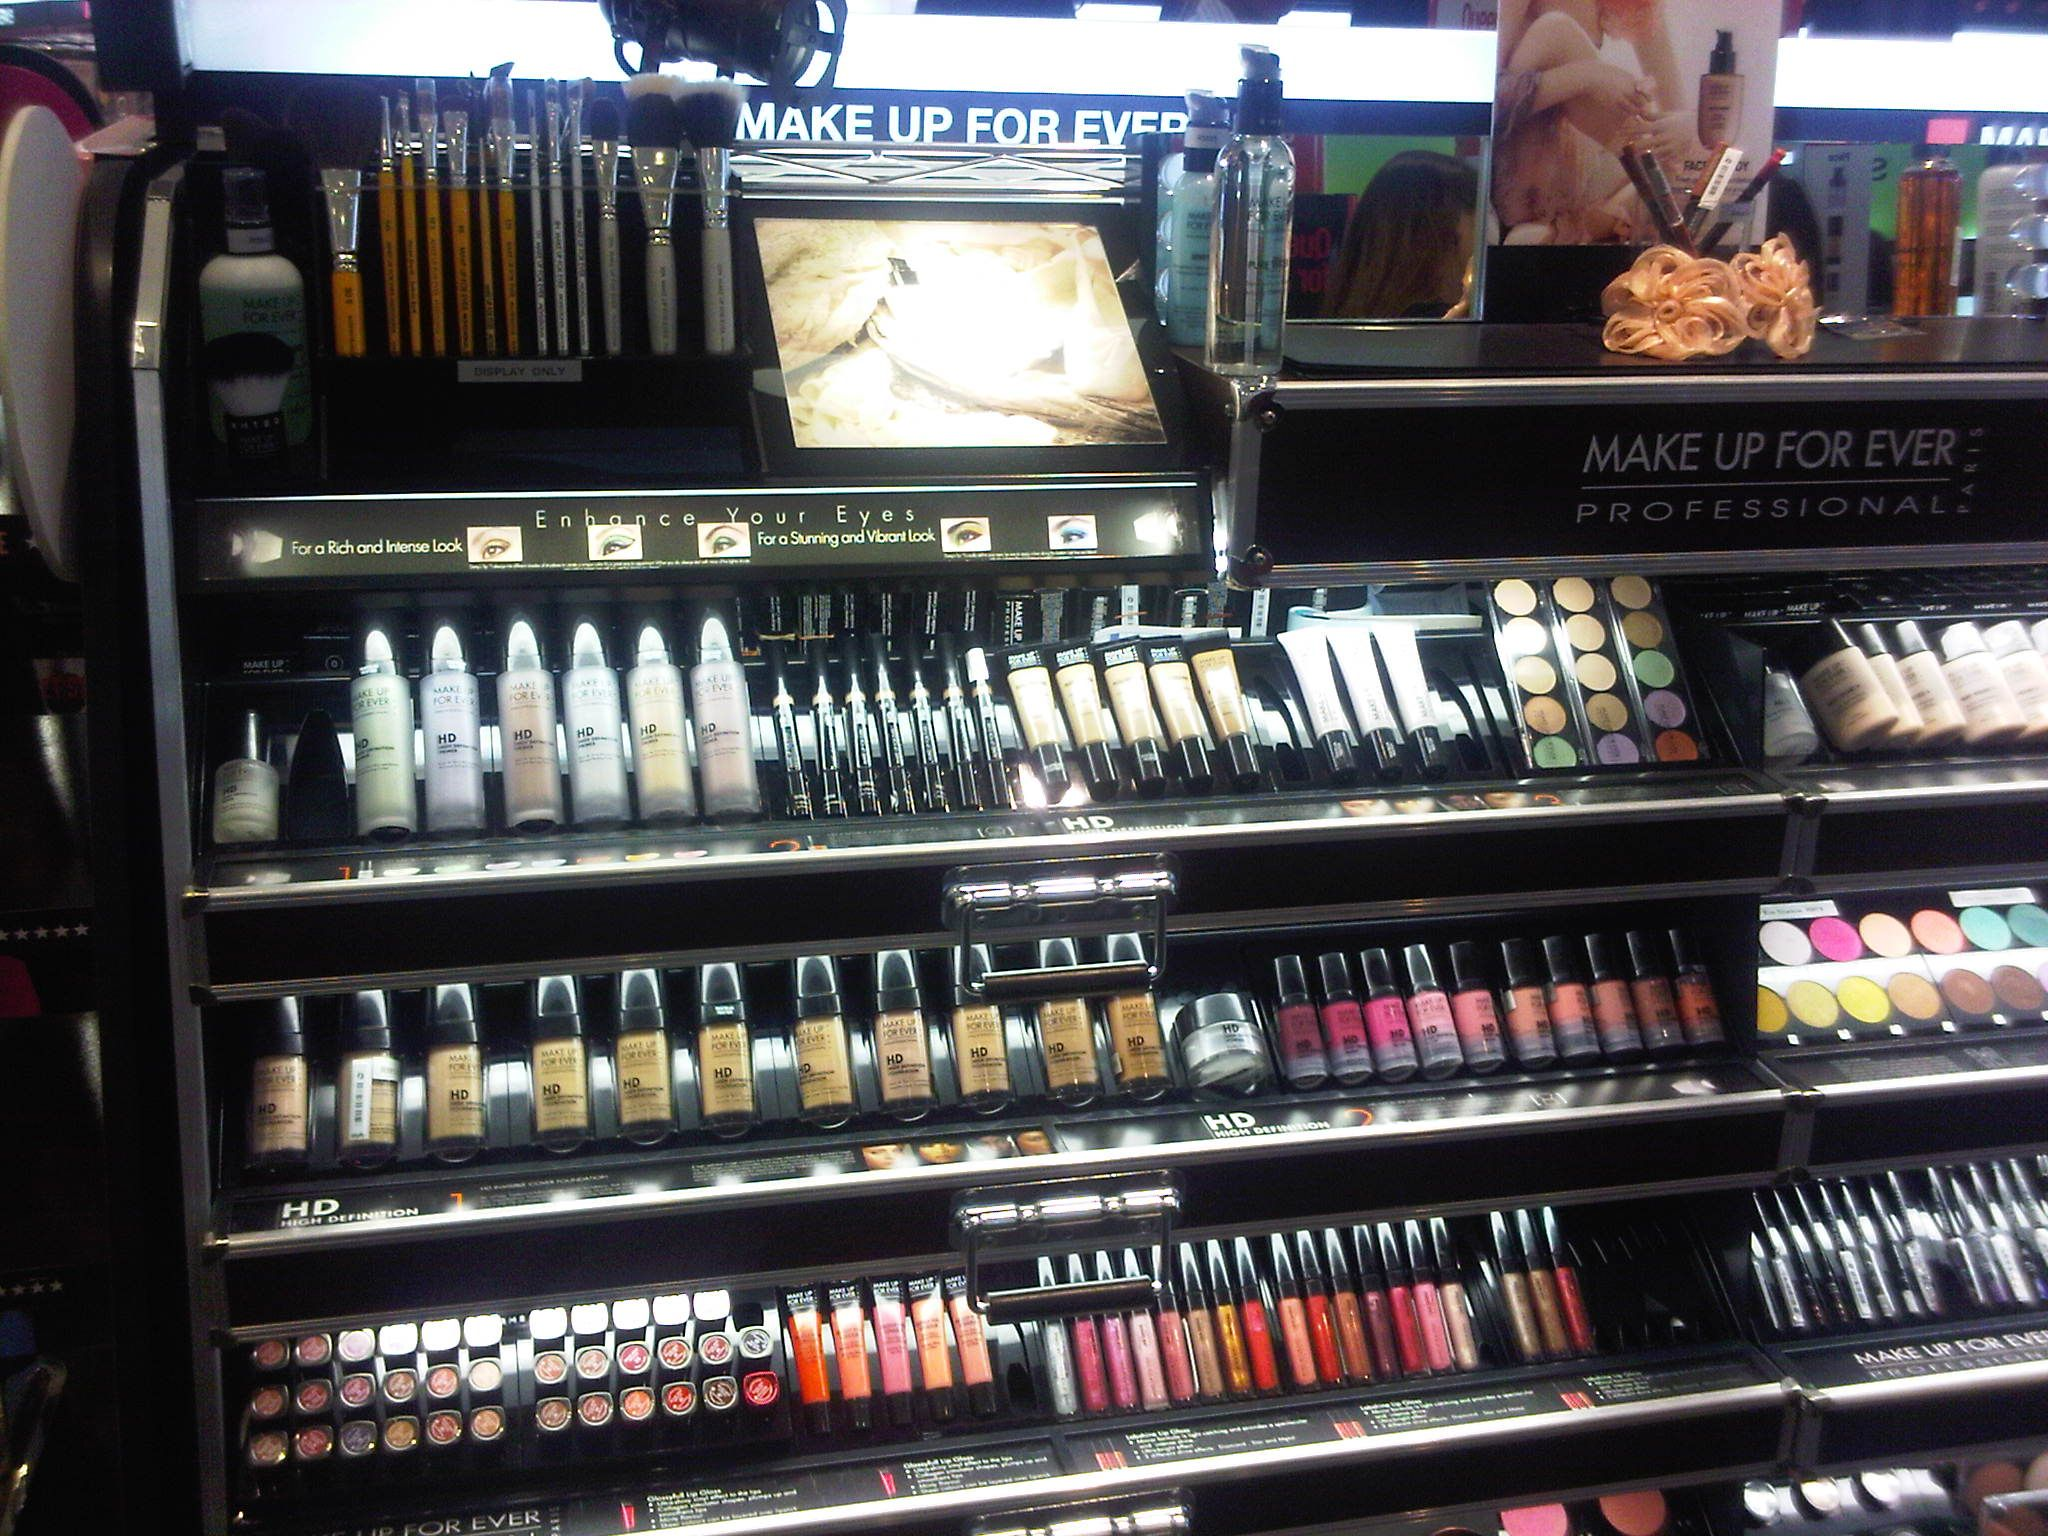 bare minerals makeup display - Google Search | bare minerals ...